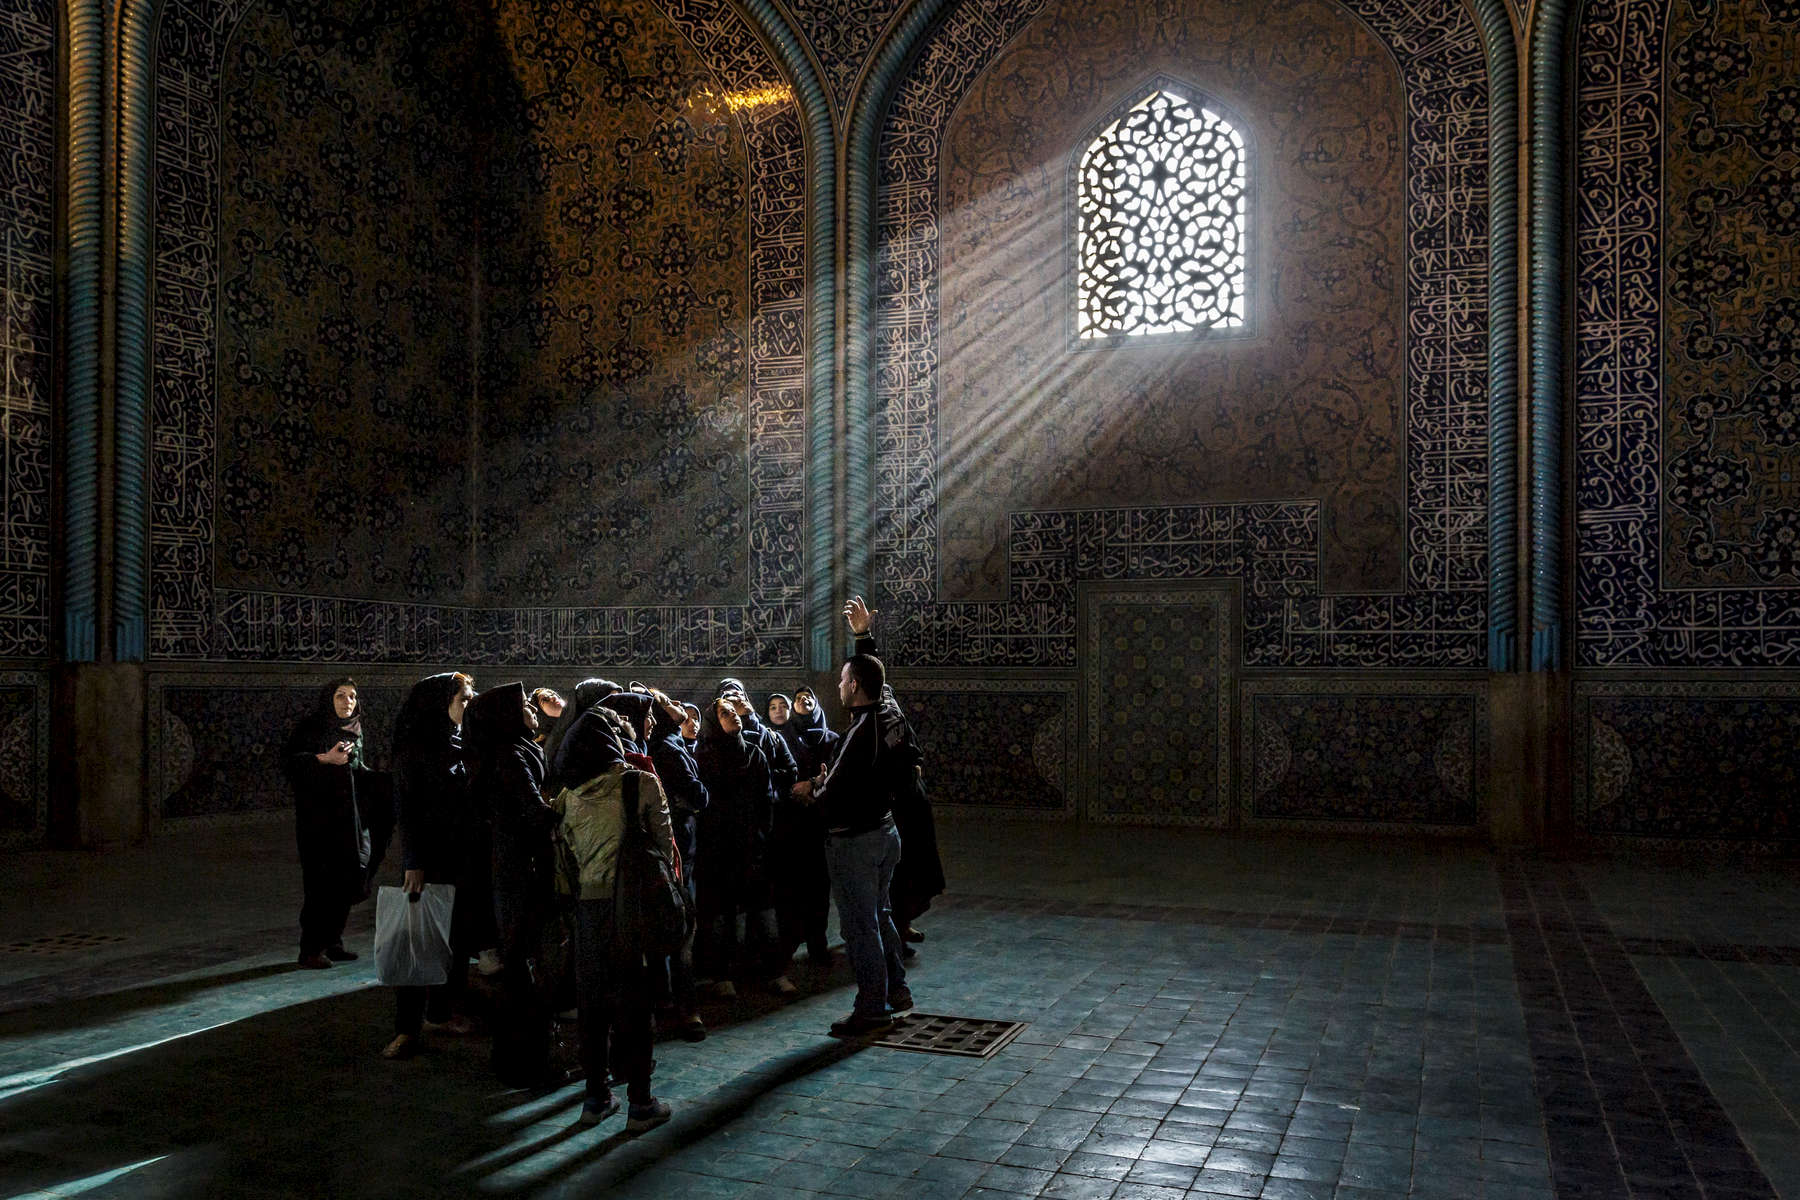 A school group on a tour of the Sheikh Lotfollah Mosque, Isfahan. The Mosque, along with the Naghsh-i Jahan Square on which it borders, are UNESCO World Heritage Sites.  Early mornings see brilliant rays of light illuminate the inticate tile work of the building.